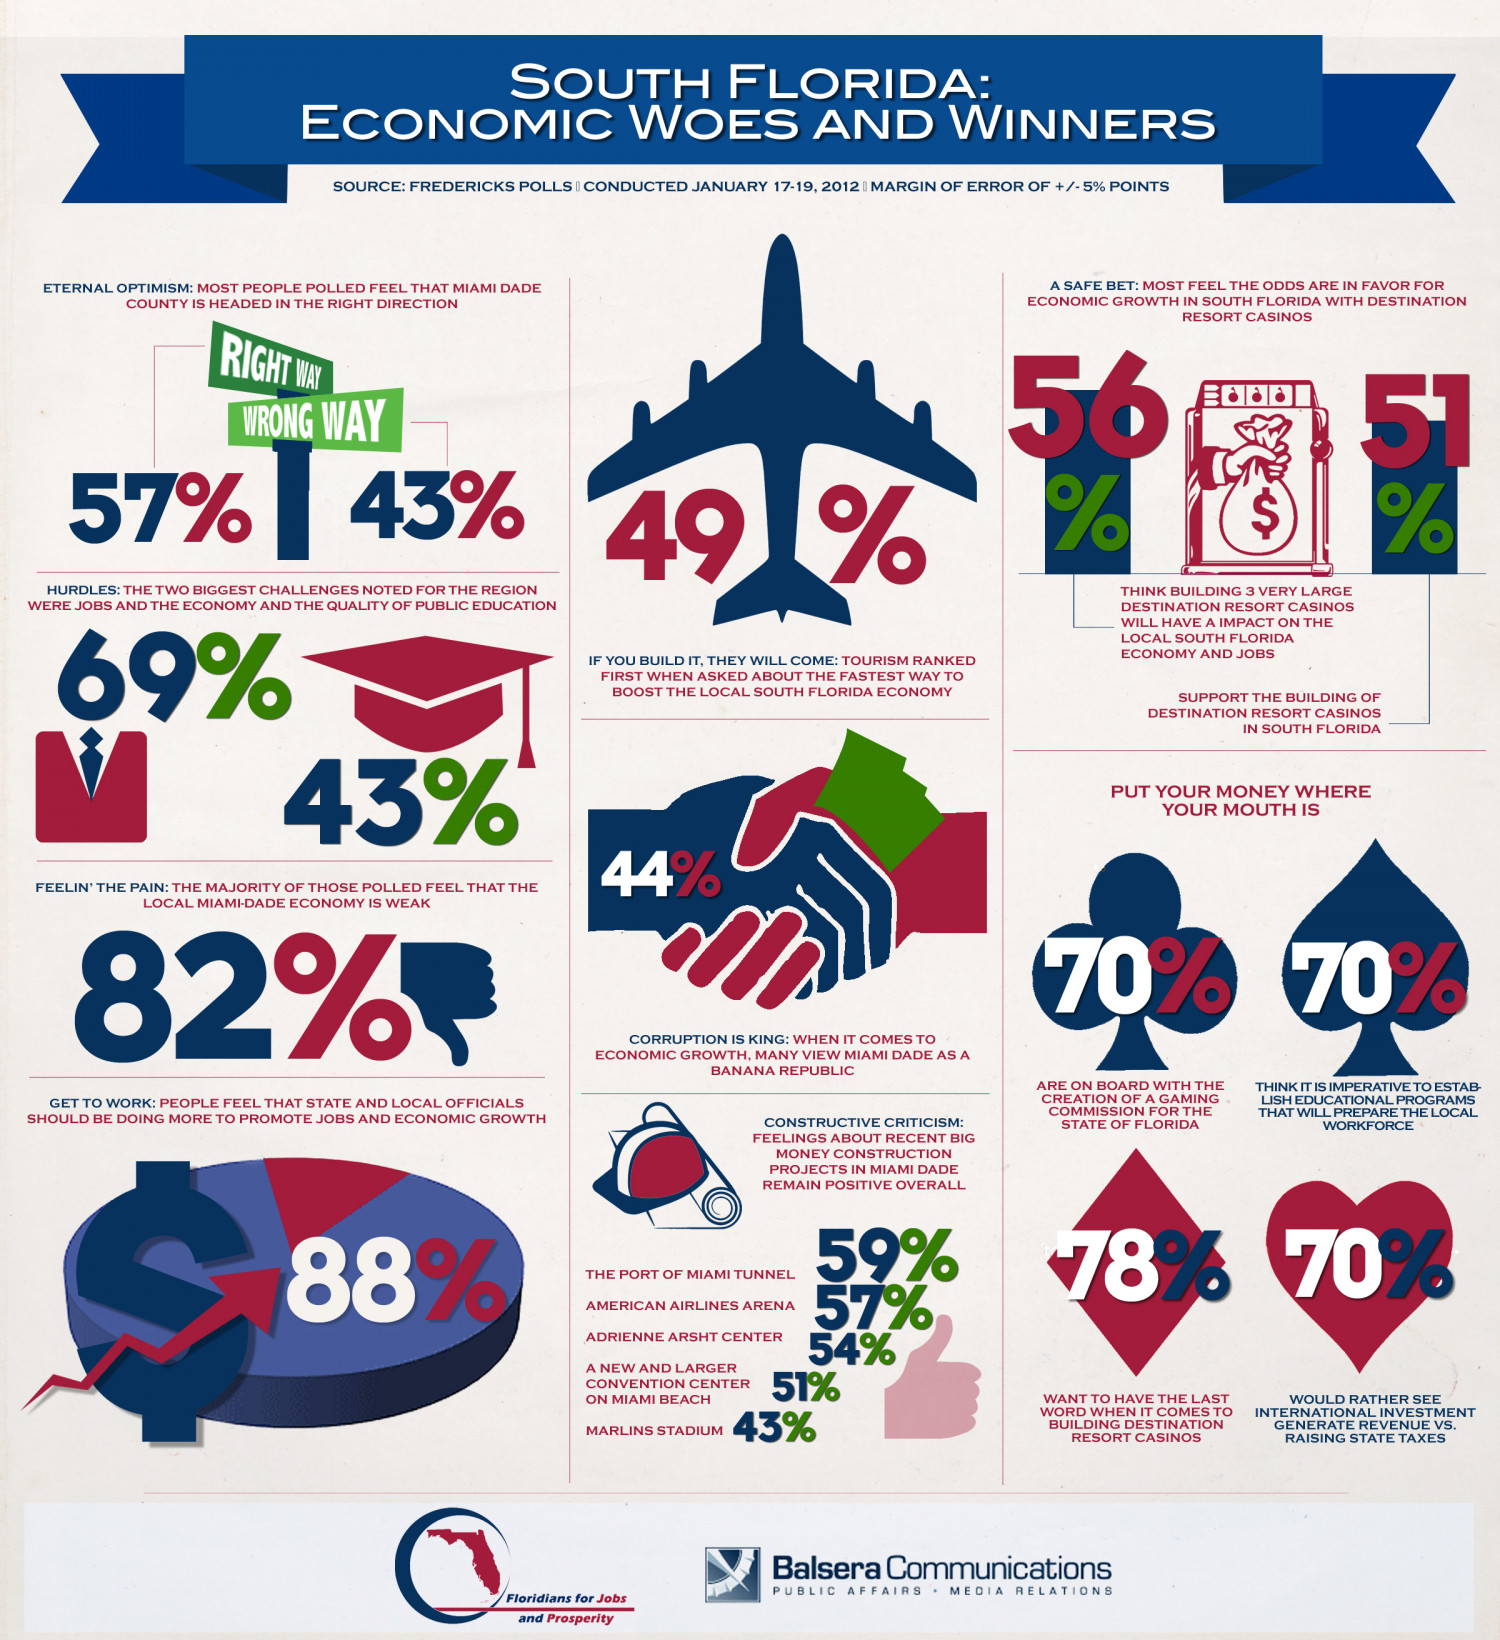 South Florida: Economic Woes and Winners | Visual.ly